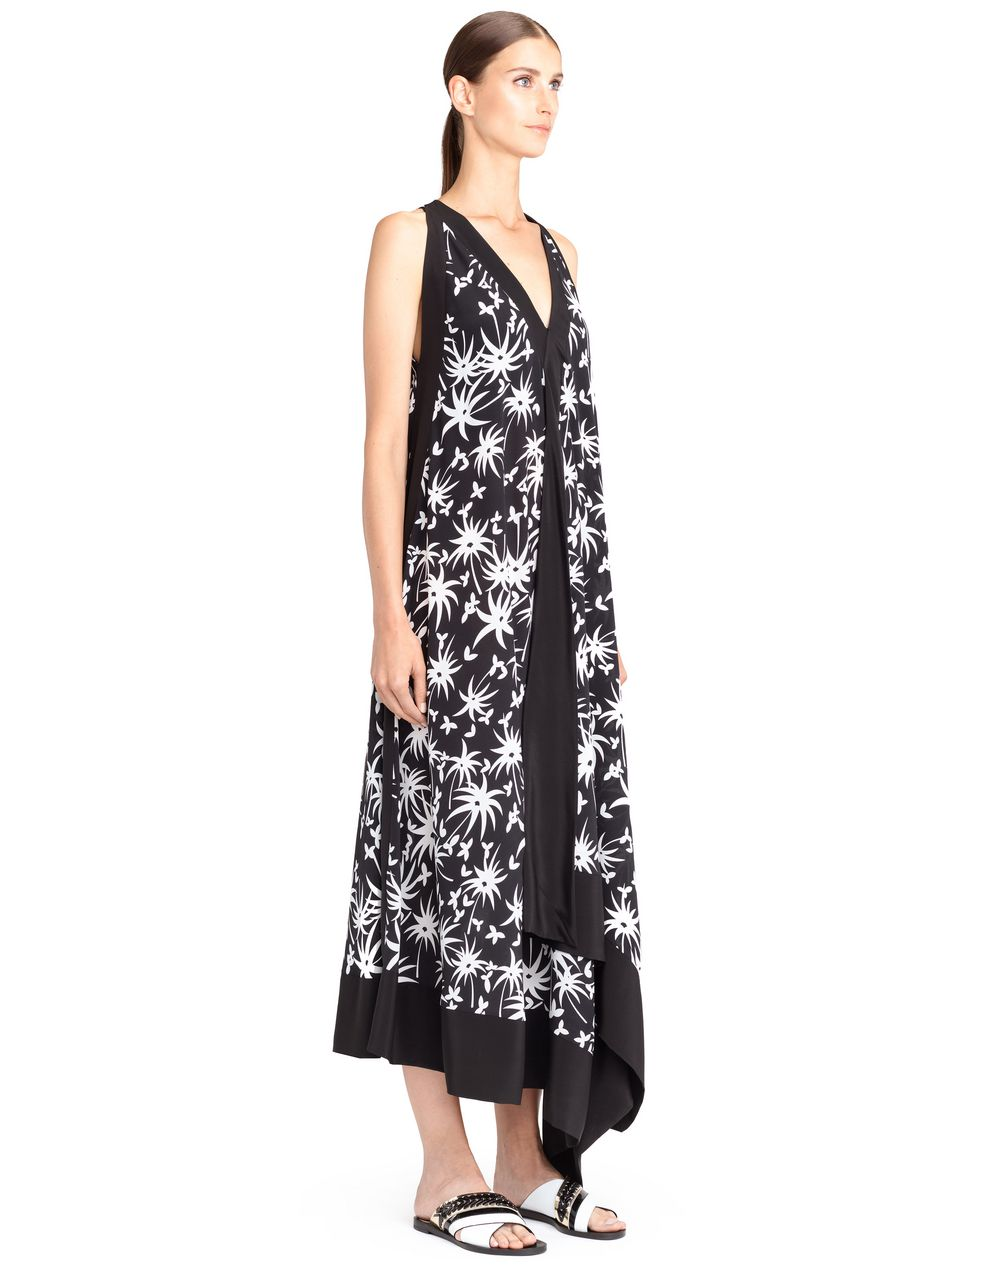 LONG HANDKERCHIEF DRESS - Lanvin